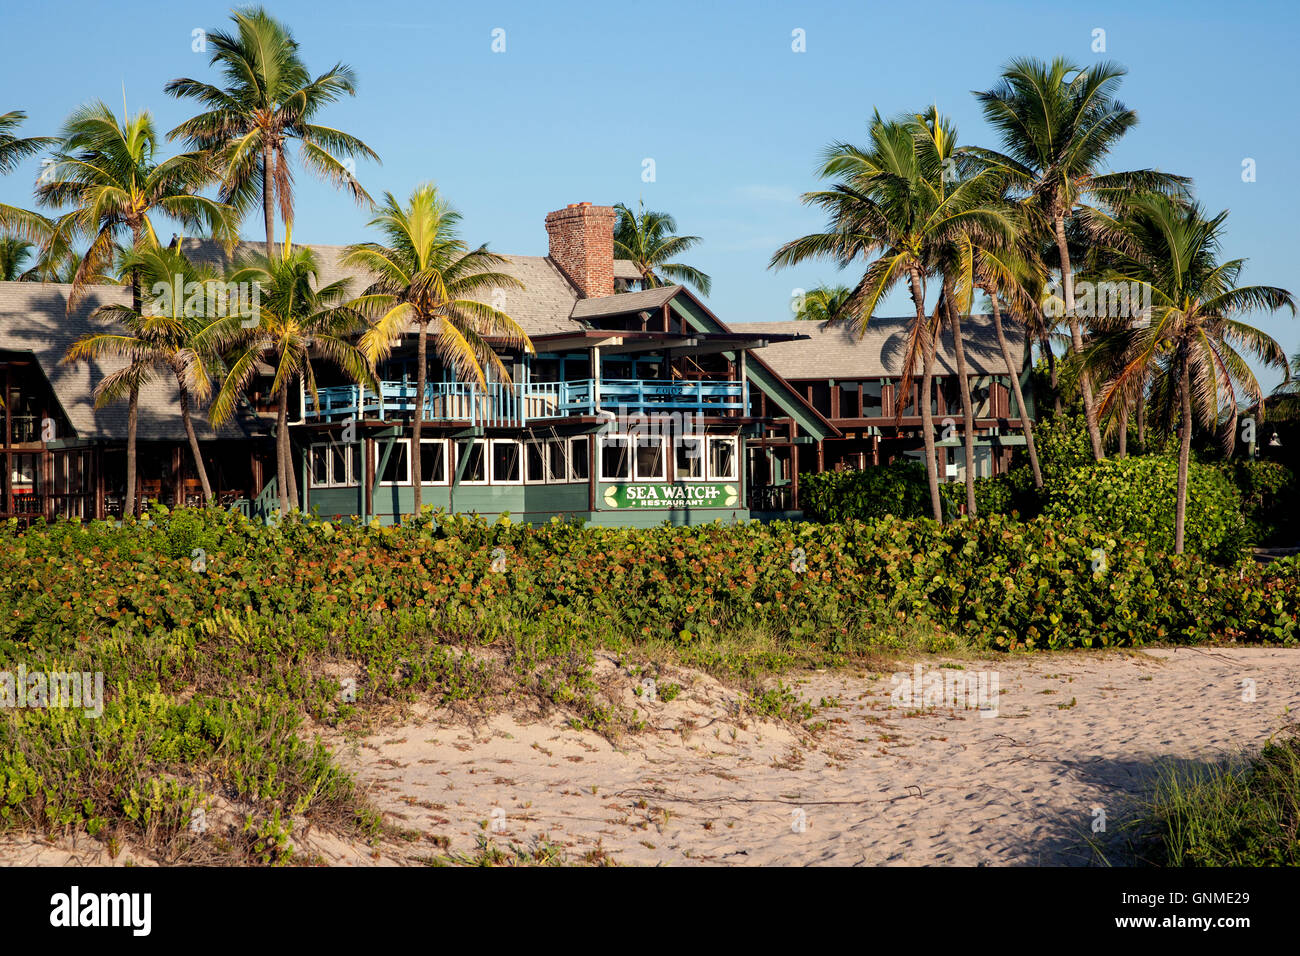 SeaWatch on the Ocean Restaurant - Fort Lauderdale, Florida, USA Stock Photo